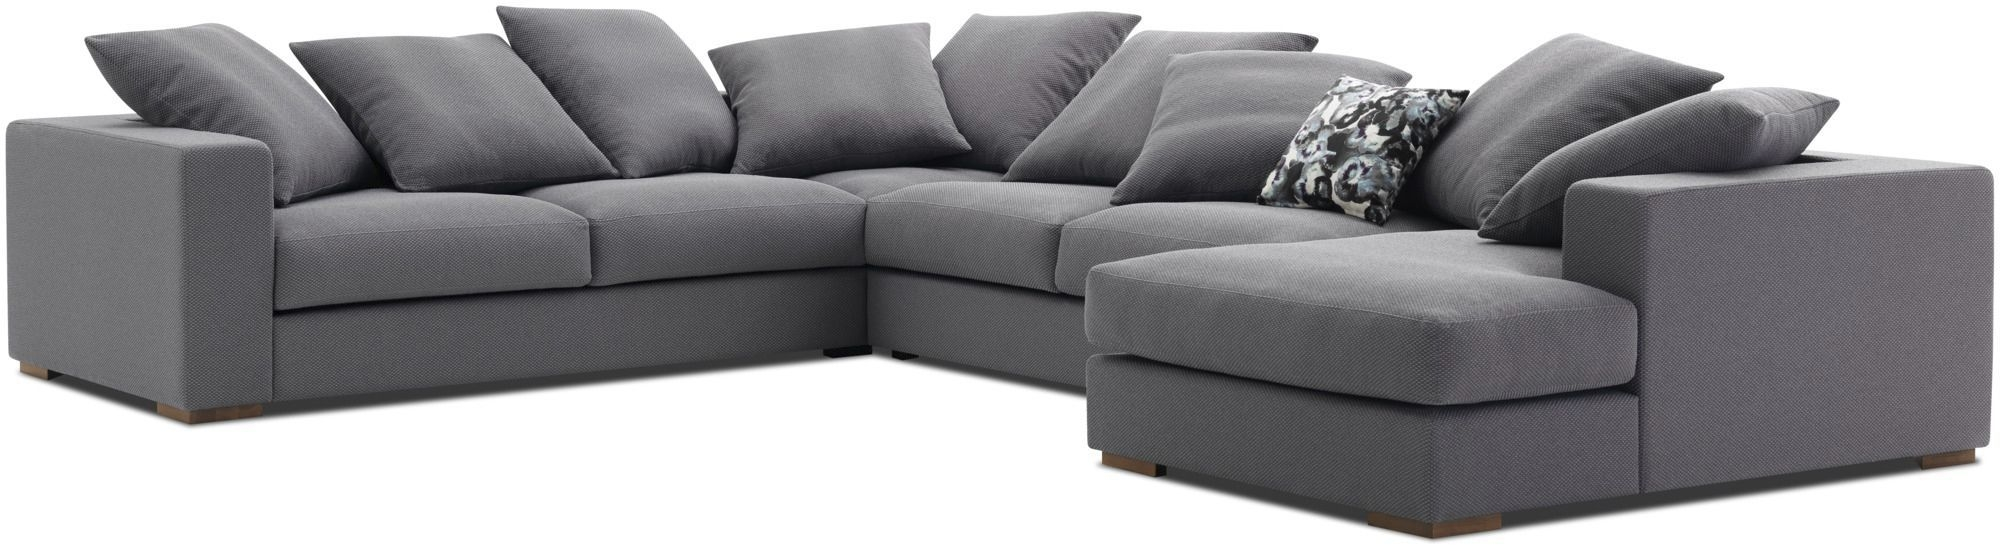 Corner Sofa Modular Contemporary Leather Cenova Boconcept Inside Modular Corner Sofas (Image 5 of 15)